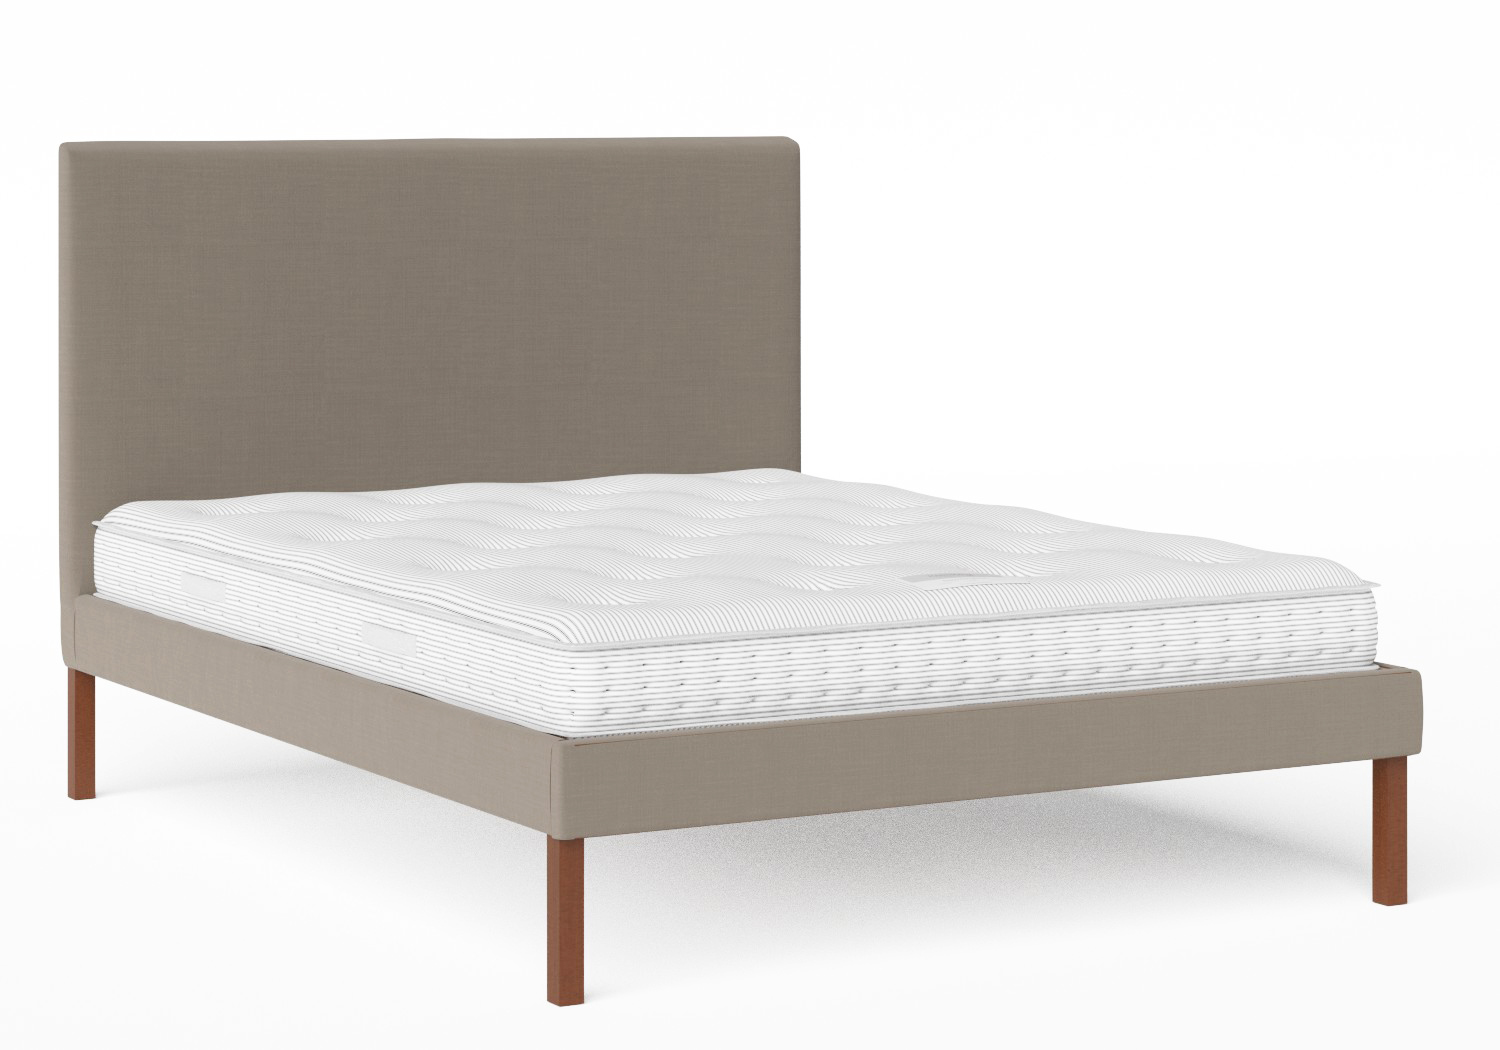 Misaki Upholstered Bed in Grey fabric shown with slatted frame